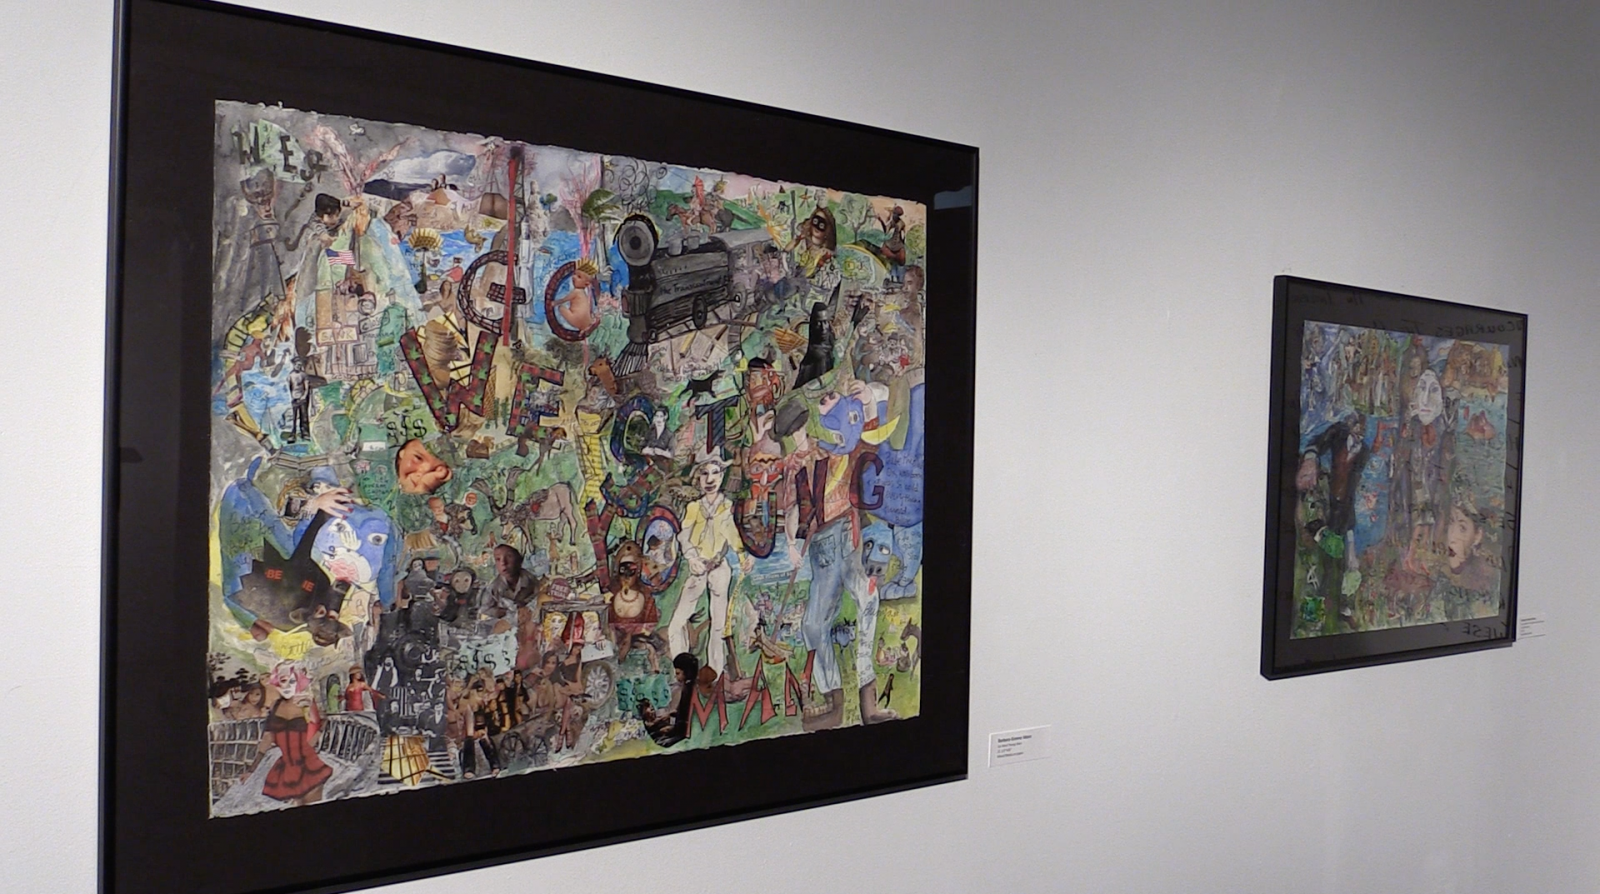 Artists with disabilities showcase their art at Tangled on Tour